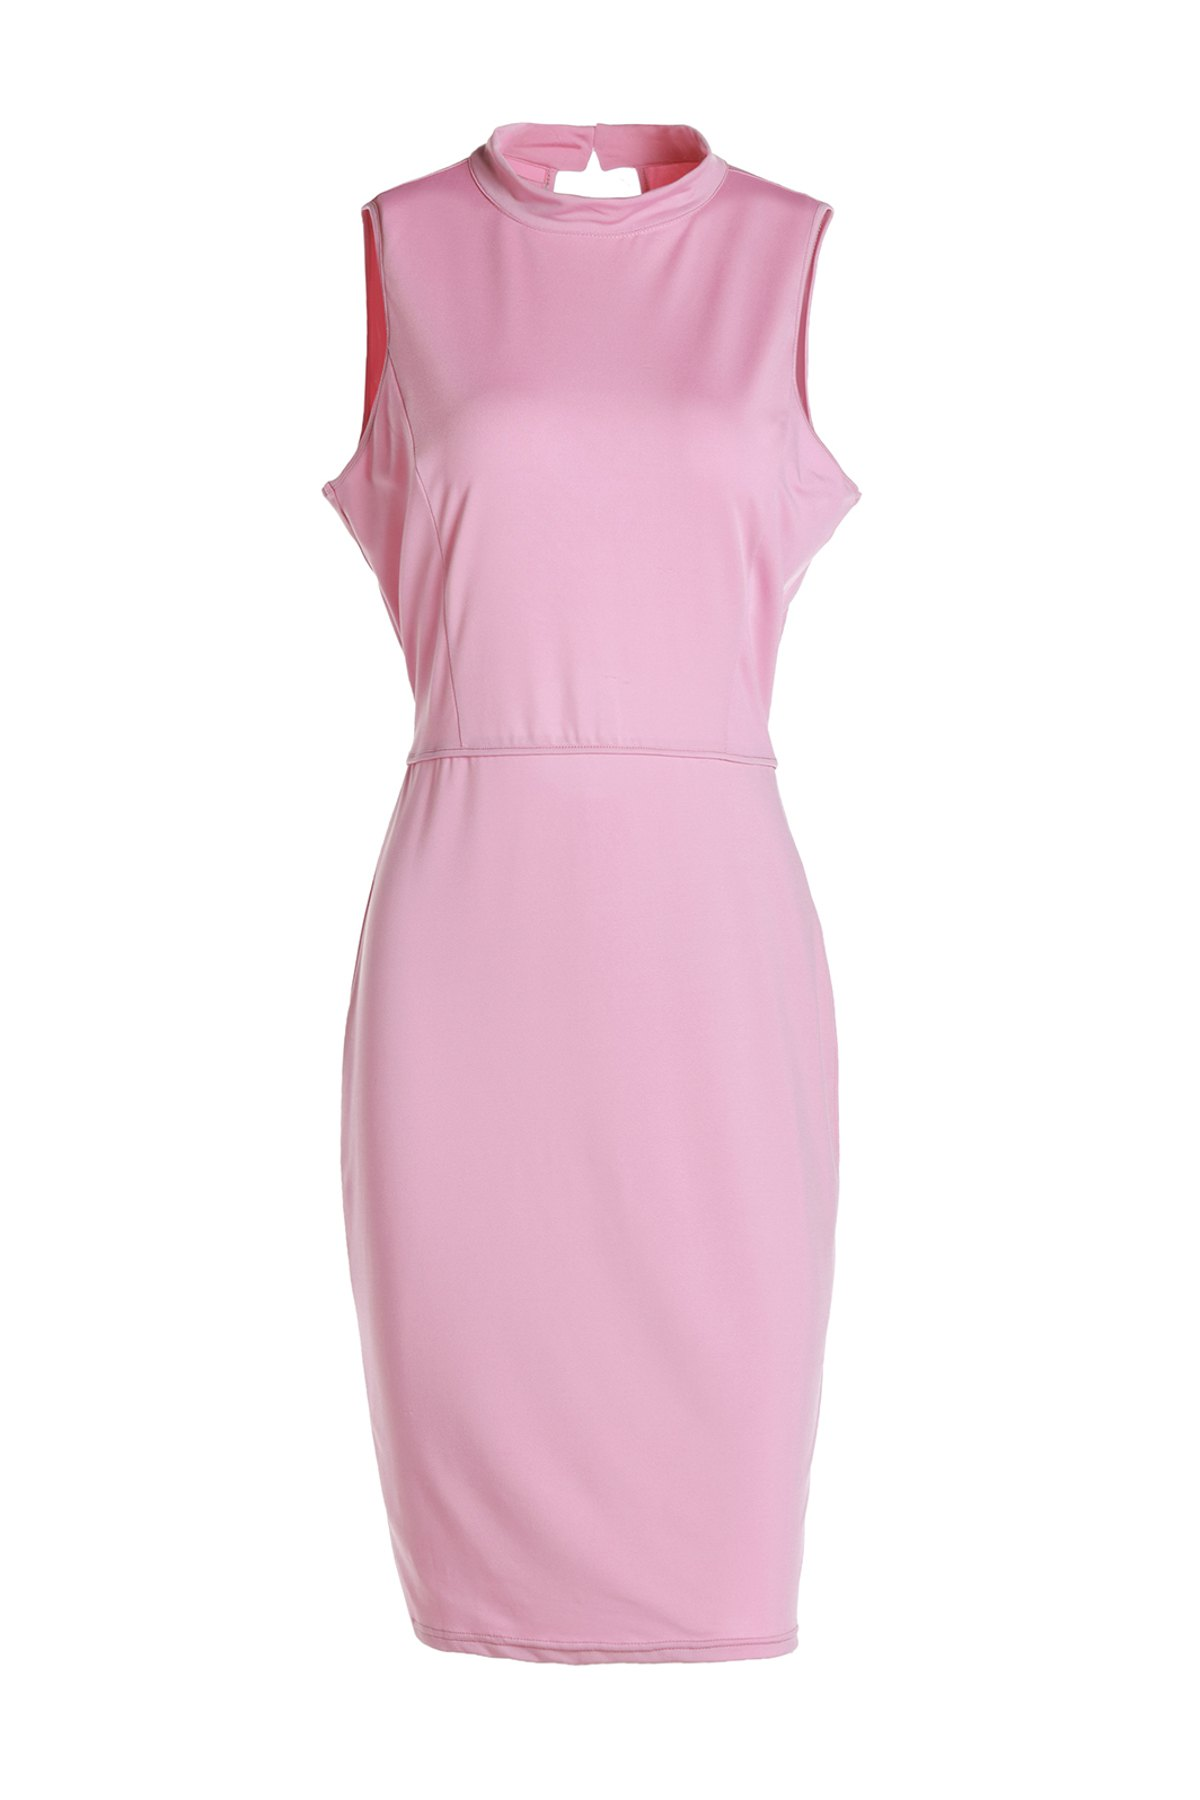 Graceful Sleeveless Stand Collar Hollow Out Pink Women's Bodycon Dress - PINK L